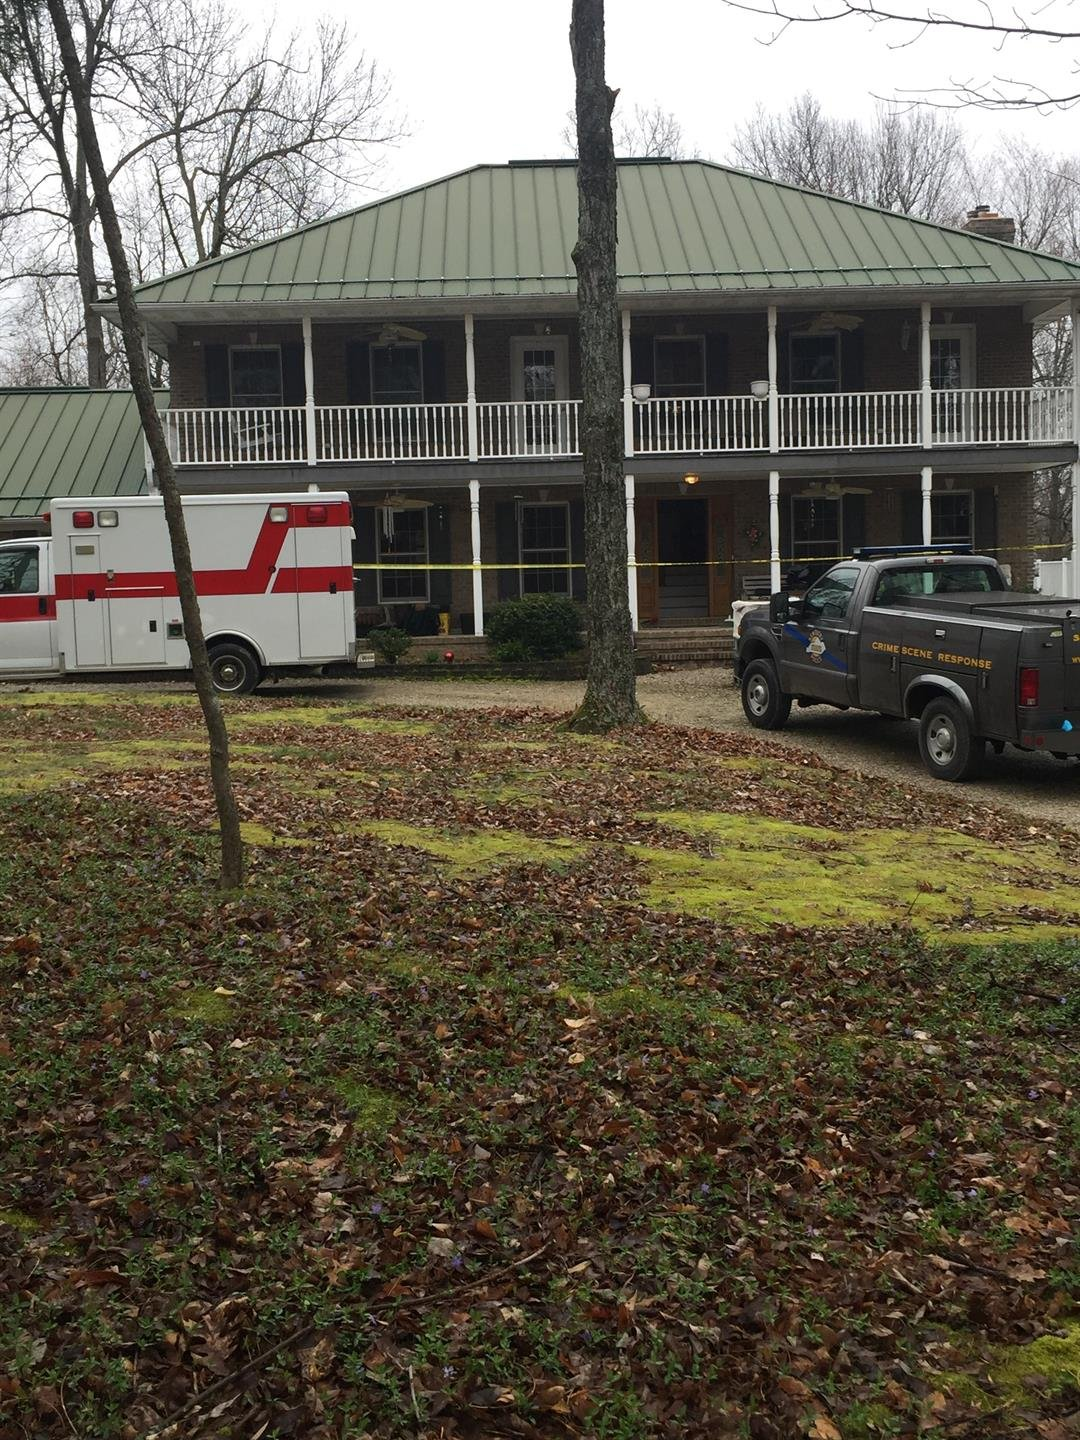 Kentucky State Police said officers were called to a report of a shooting on G. Shelton Road in northern Hart County just after 3 a.m. Sunday.(Photo provided by KSP)